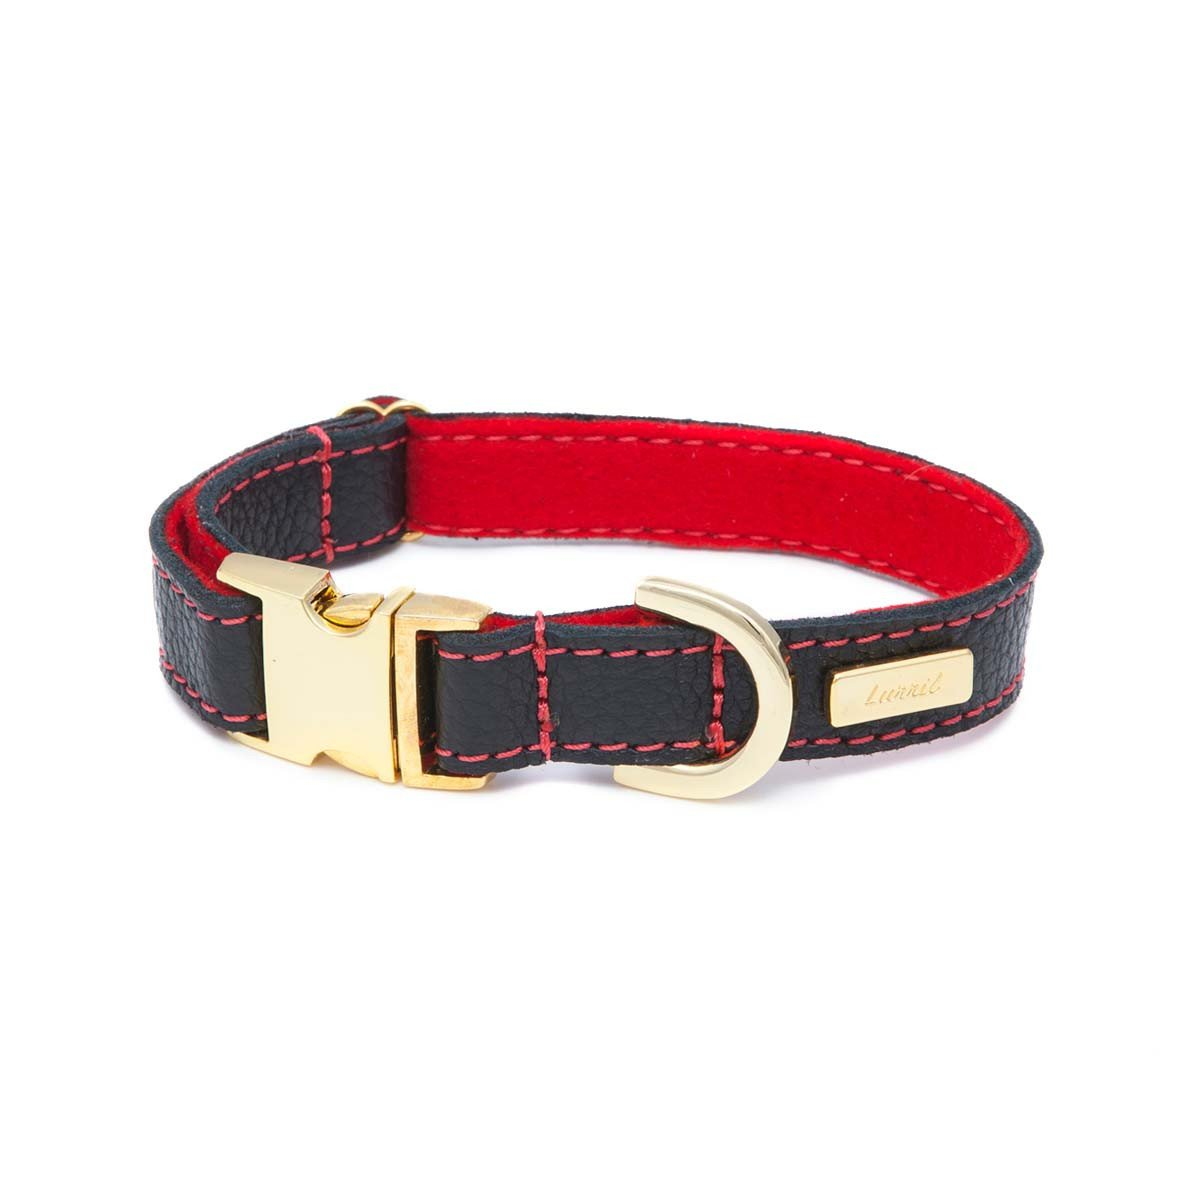 Black Leather Dog Collar for your Jack Russell Terrier - Durable & Soft Leather and Soft Wool Lining